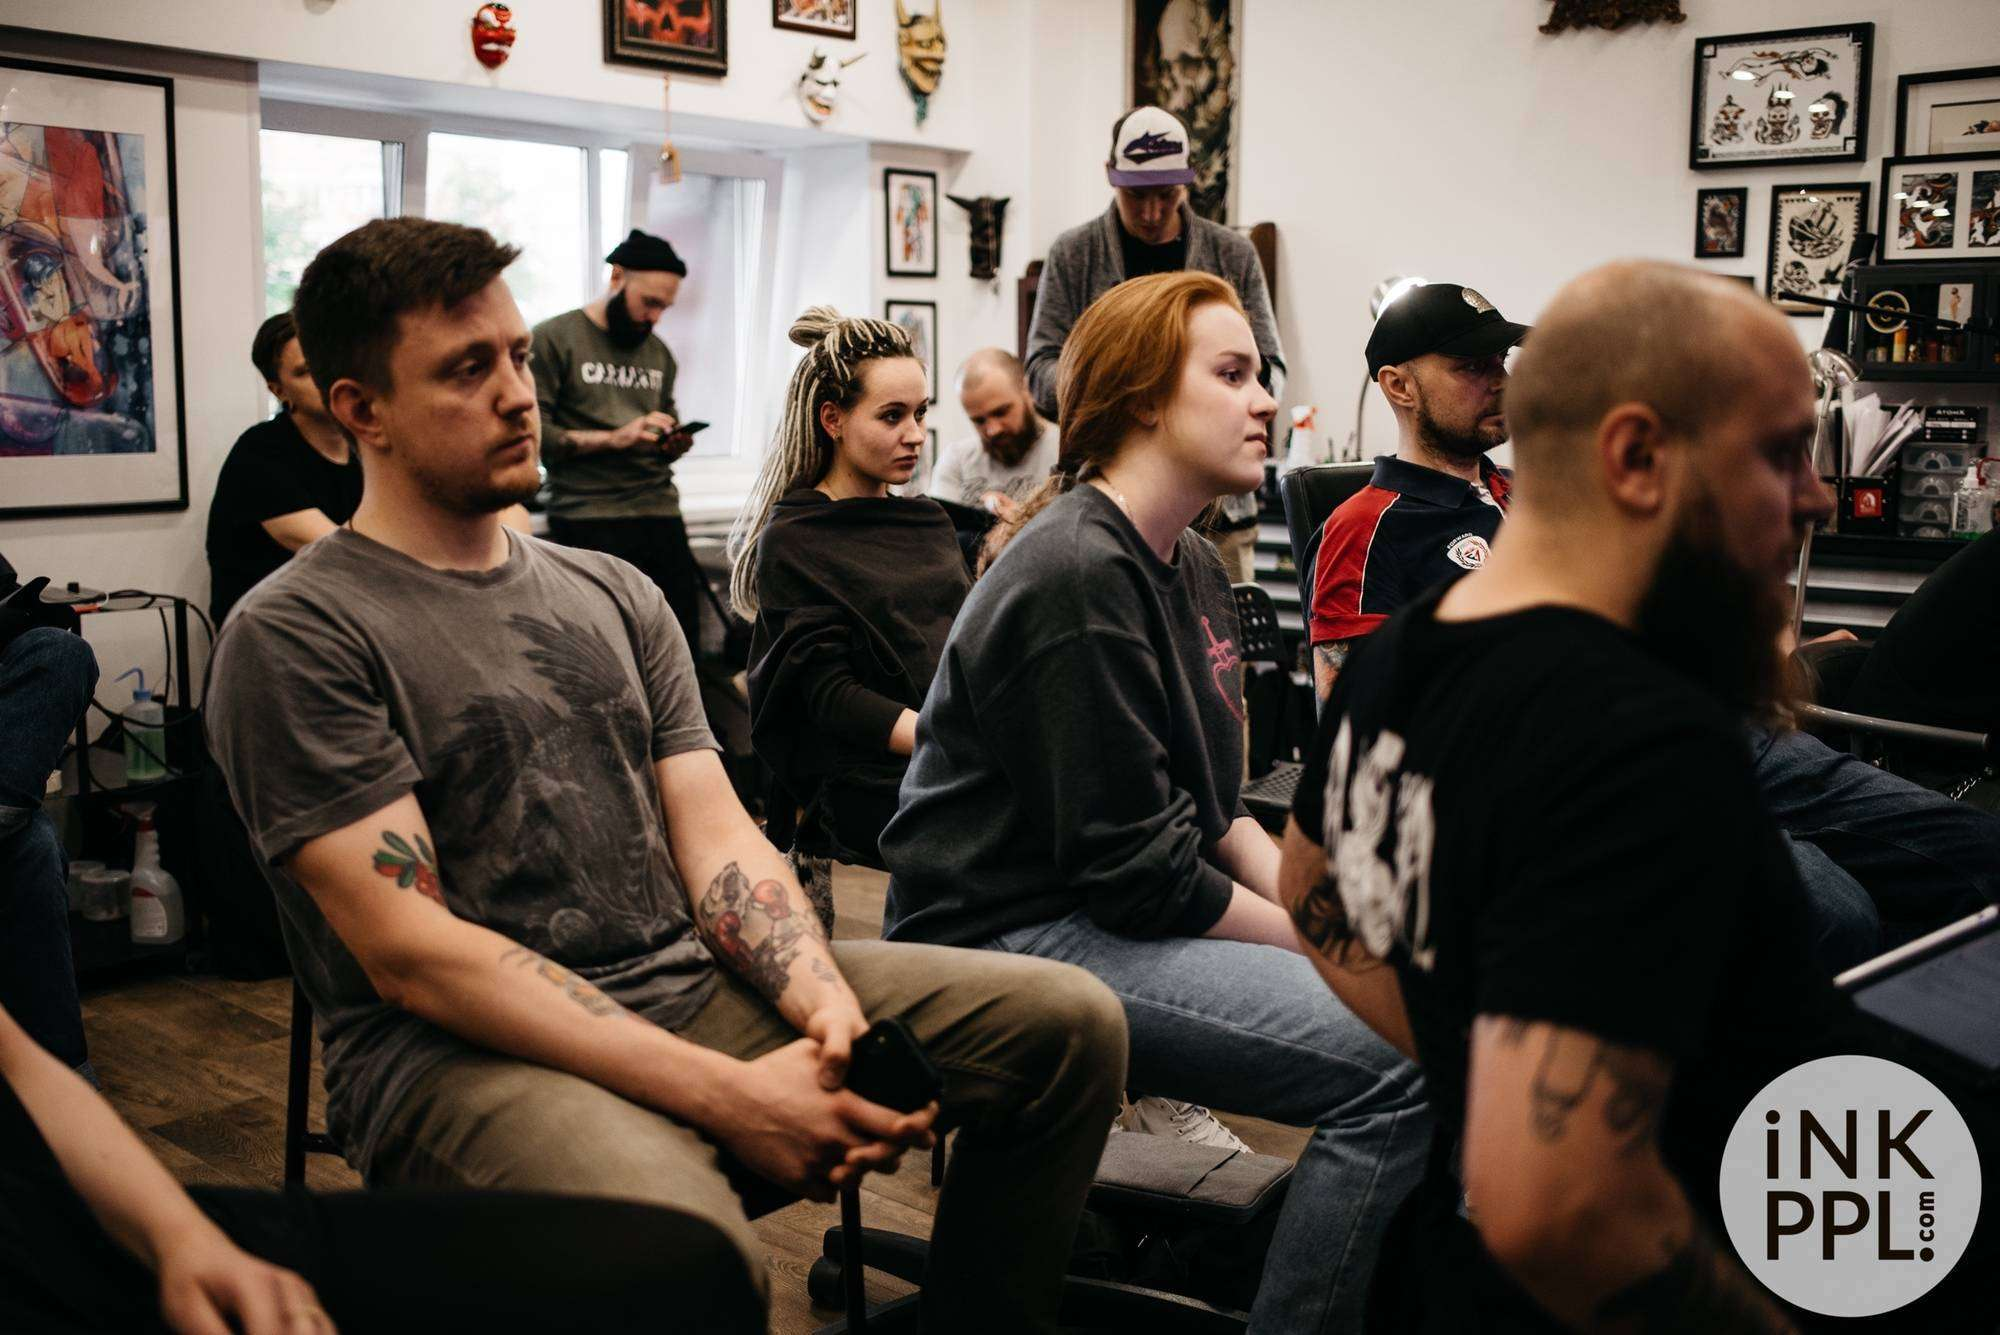 On June 9th, the iNKPPL Tattoo Magazine team, together with the Tattoo Pharma, attended the first discussion panel format event at the Bugpin Tattoo studio in Moscow, during which Maxim Titanic Kislitsyn and Oleg Turyansky shared their thoughts about tattoo culture, art, modern tattoos and technical aspects of tattooing with guests .